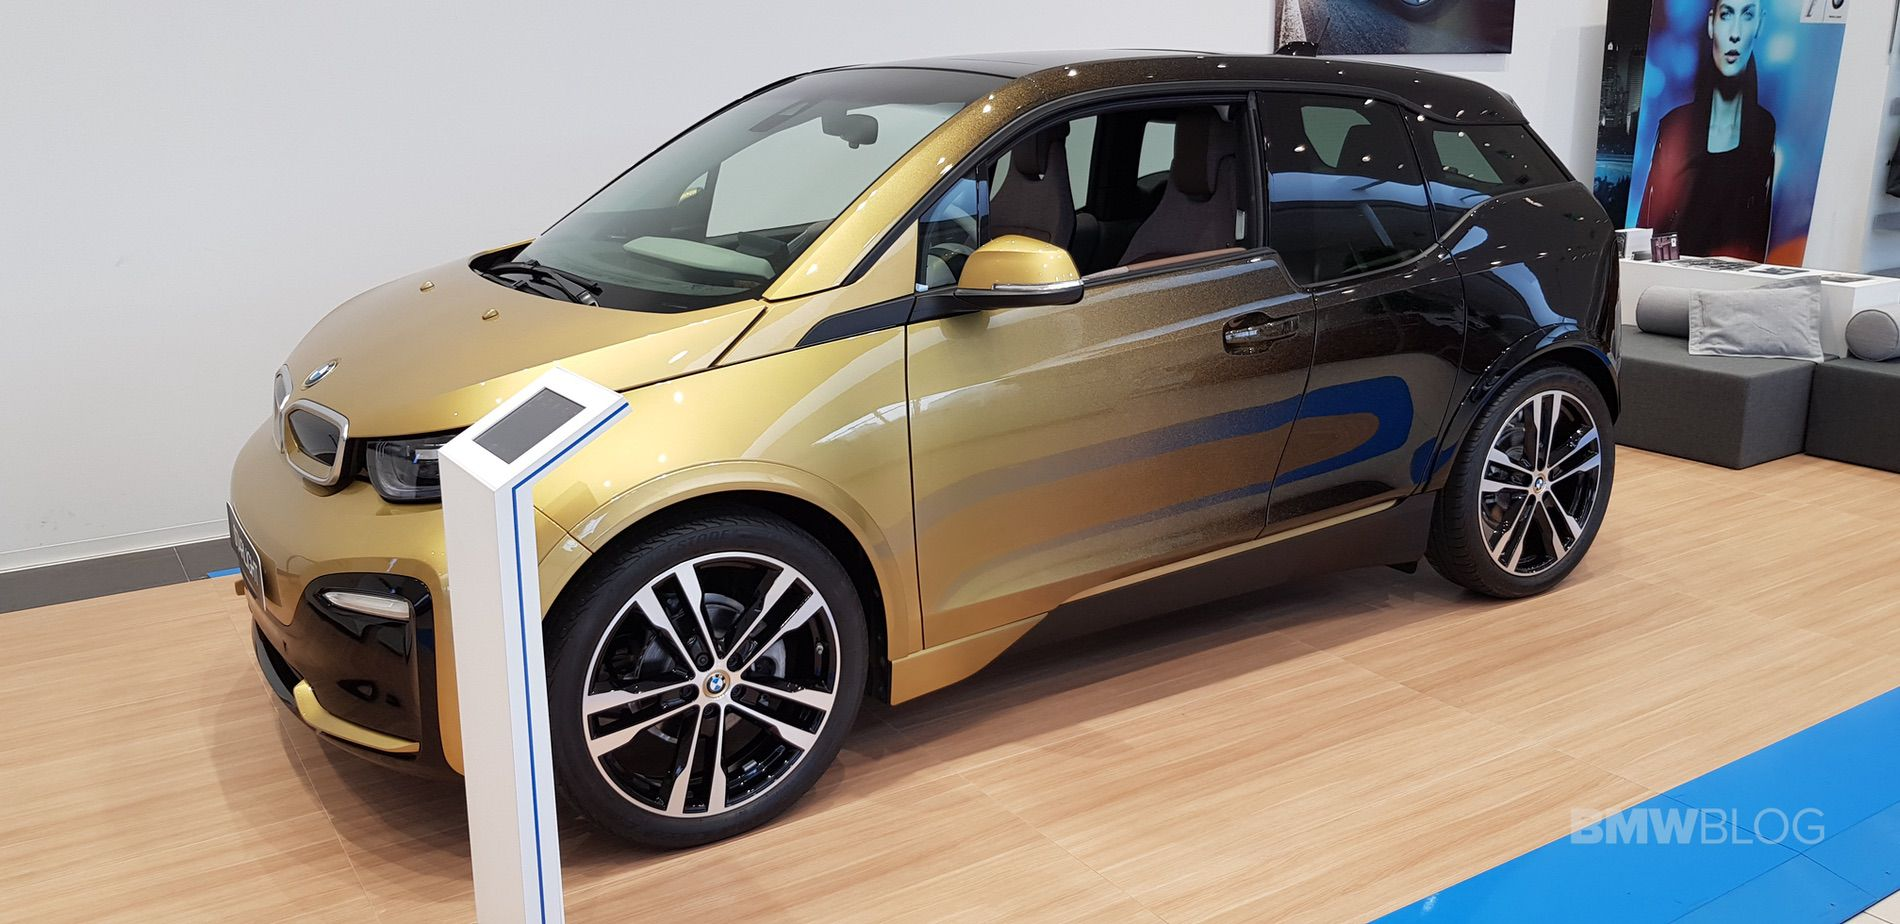 Bmw I3 And I8 Starlight Edition Now Up For Auction I New Cars